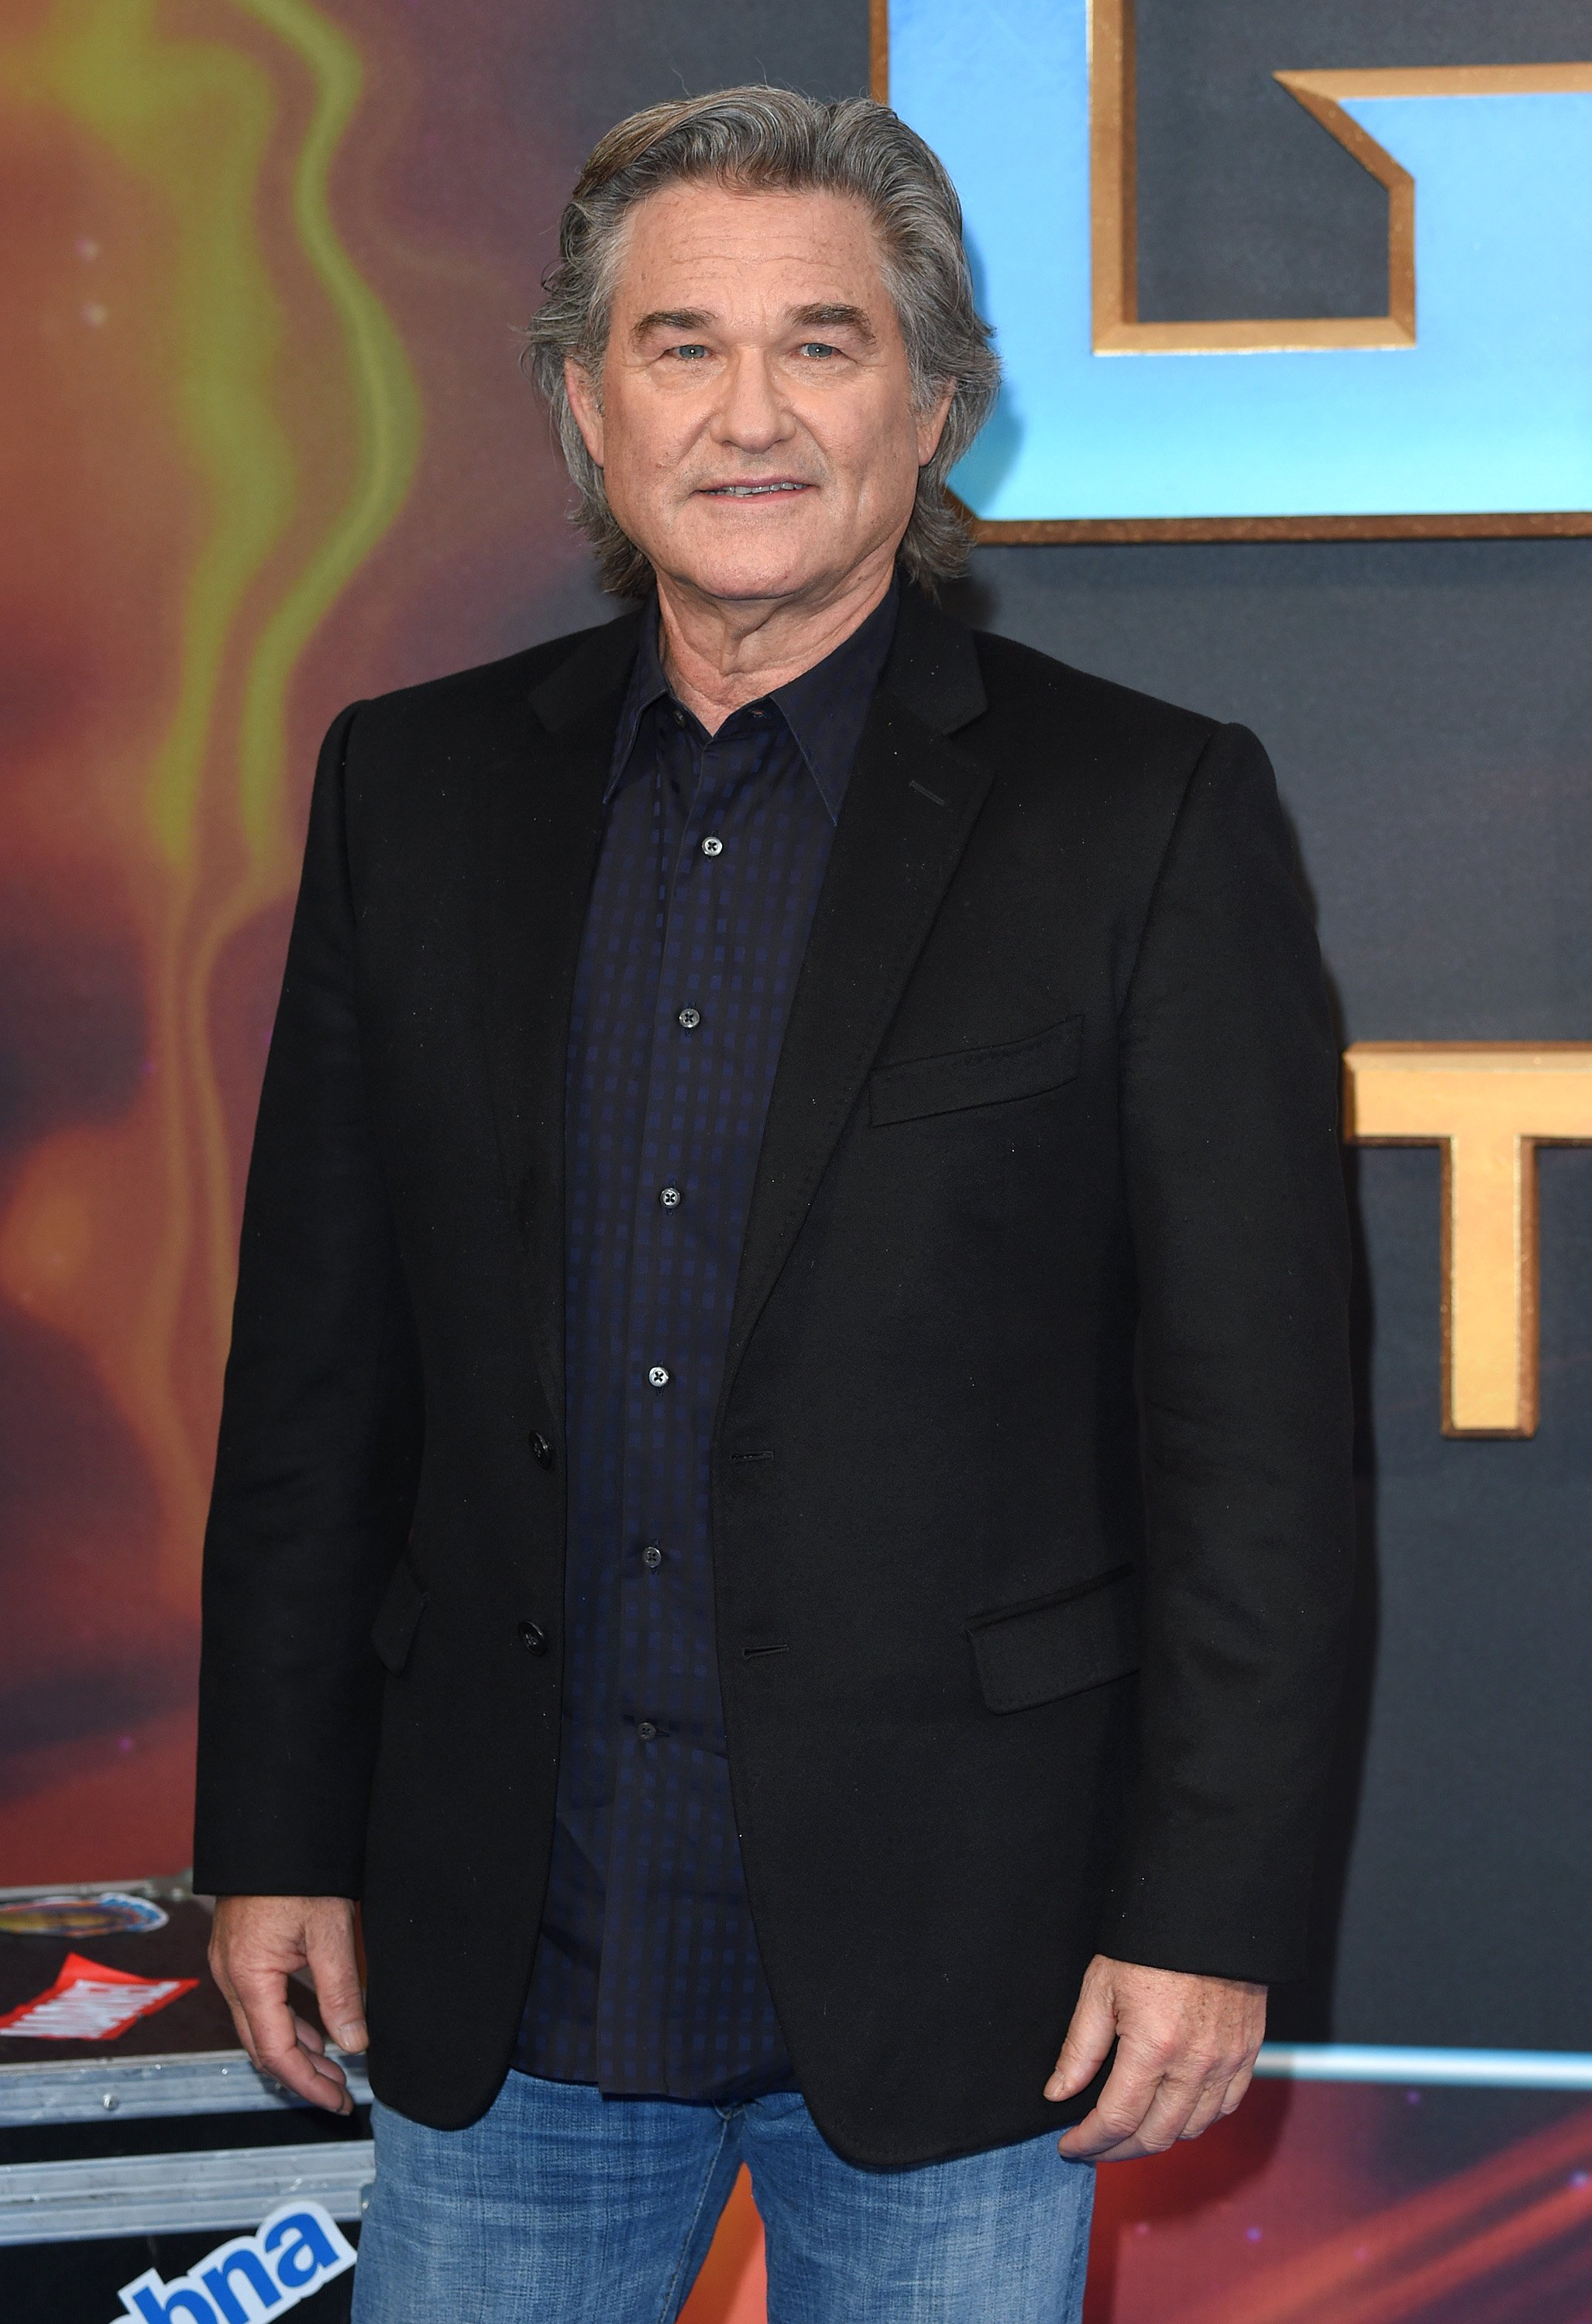 Image Credits: Getty Images | Kurt Russel thinks he saw a UFO